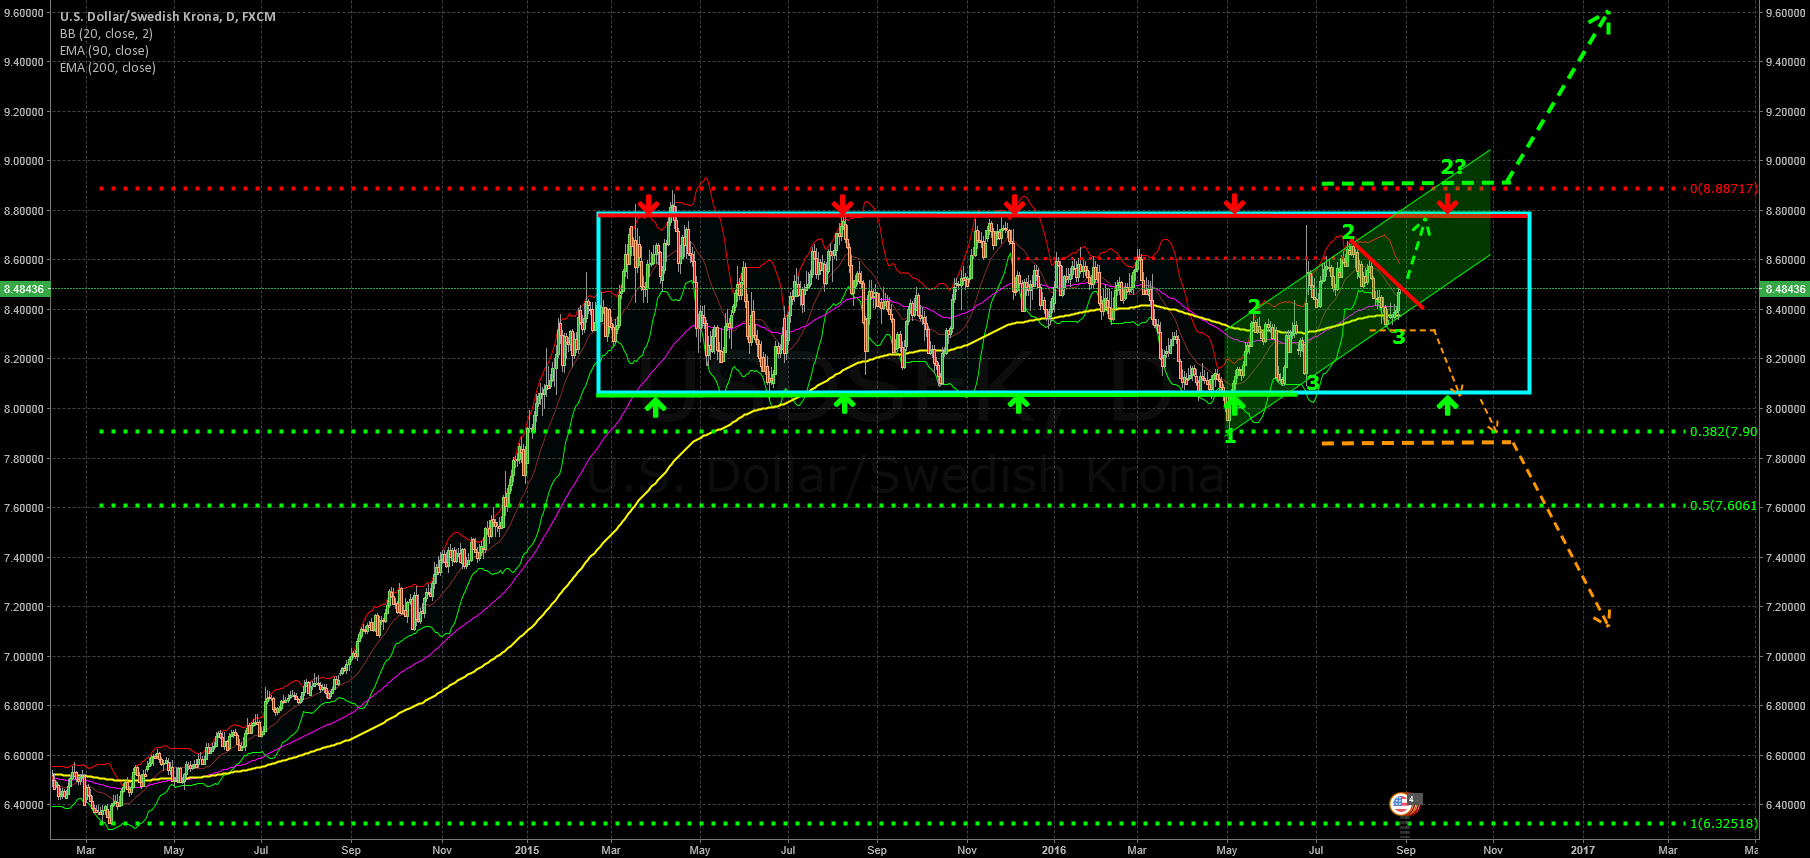 Next upwave ahead?